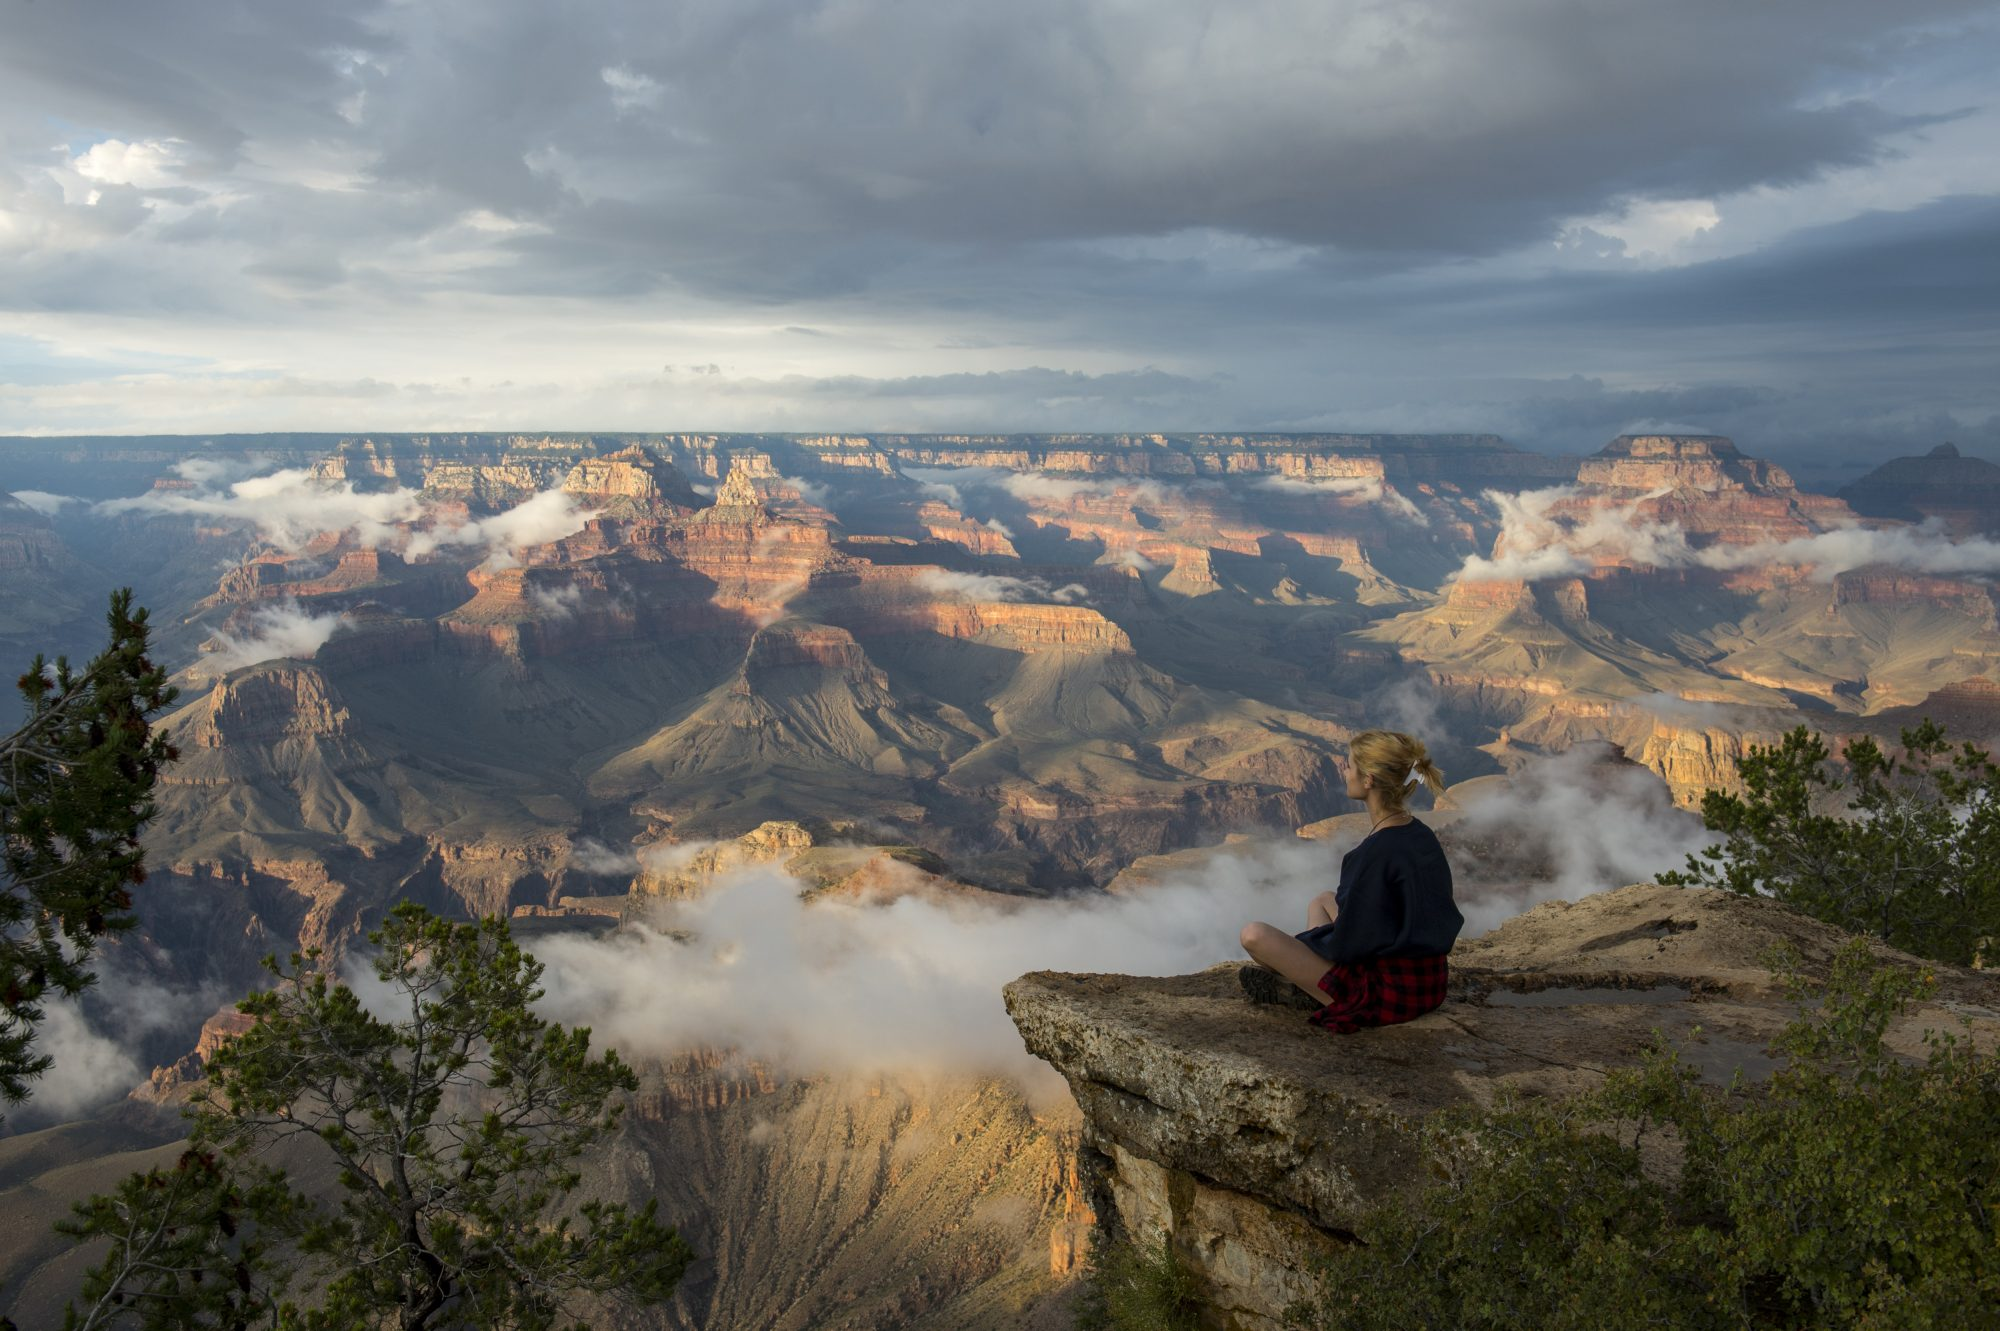 Woman Sitting on a Cliff Overlooking the Grand Canyon